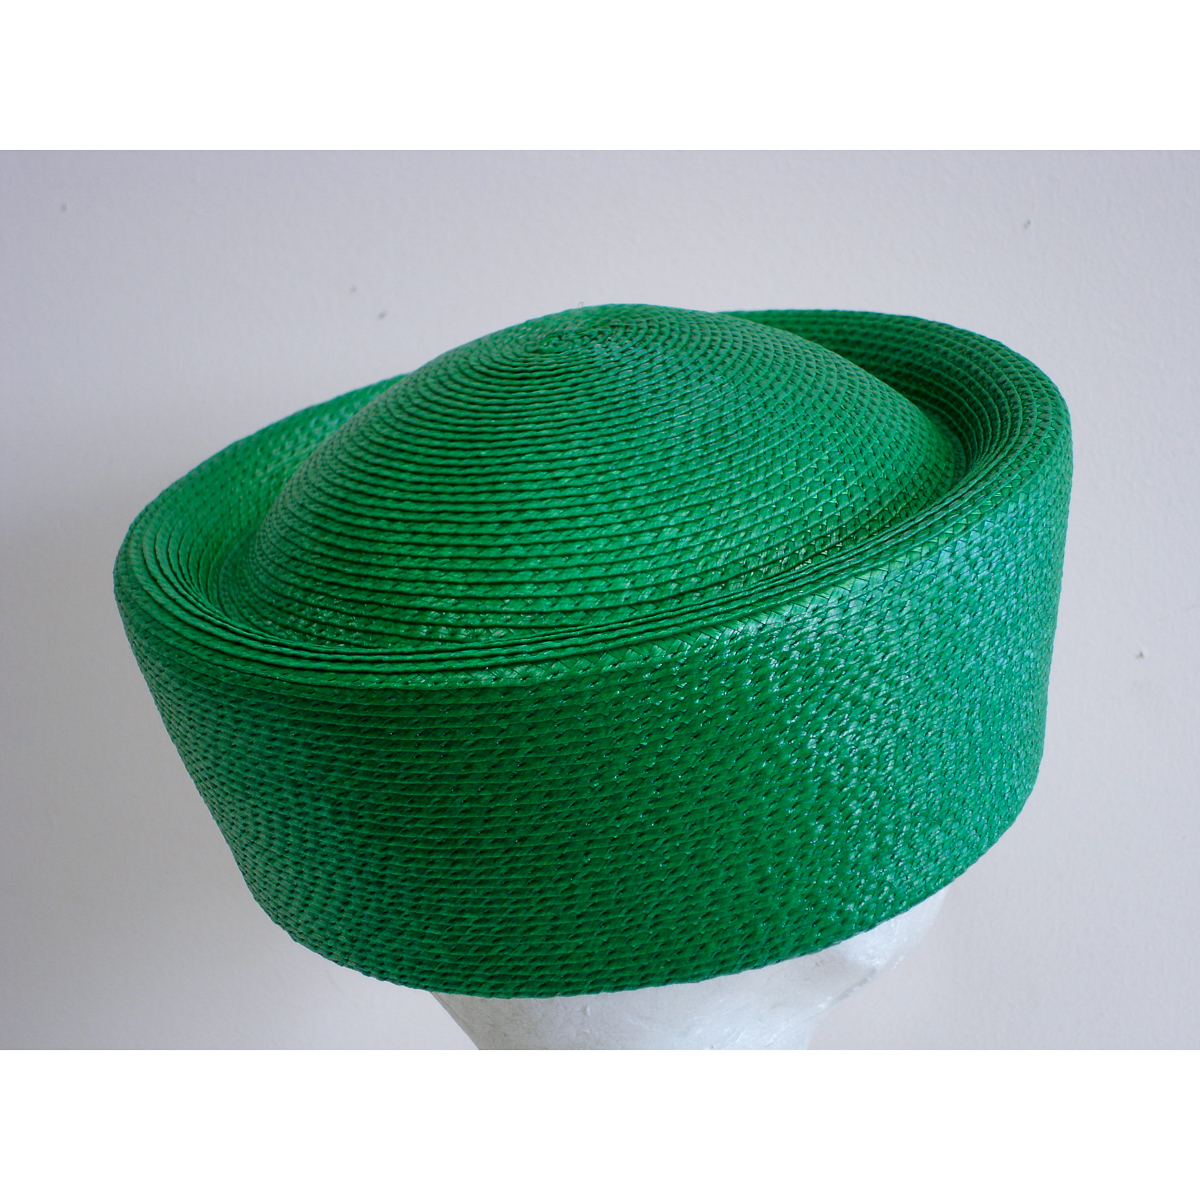 Emerald Green Pillbox Hat Body by Zoria  30ad9634285